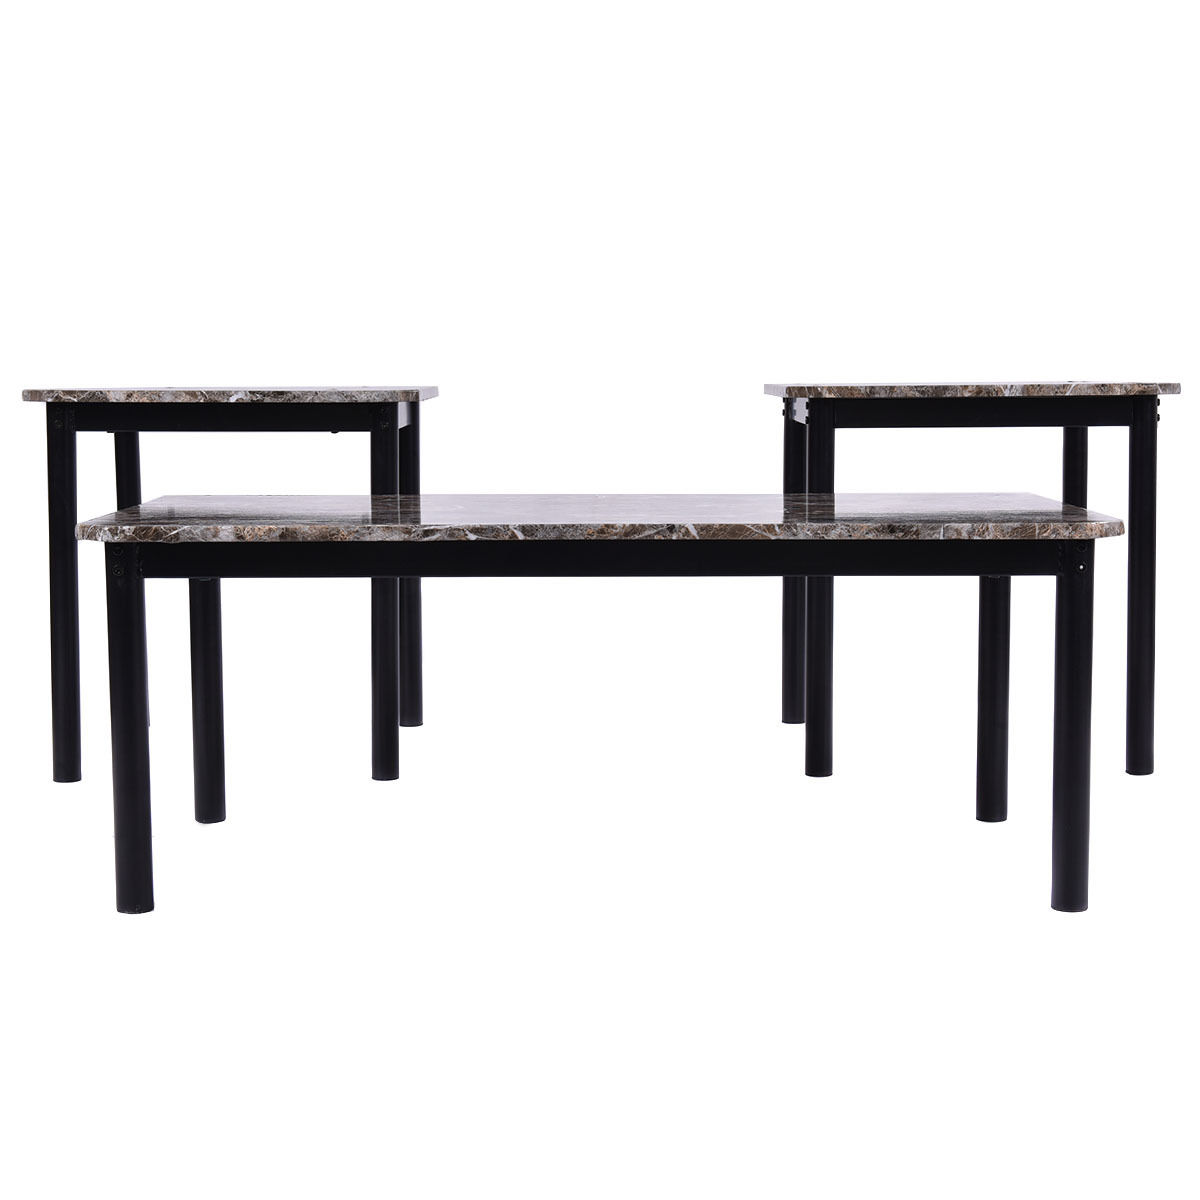 Marble Coffee Table Walmart: 3 Piece Modern Faux Marble Coffee And End Table Set Living